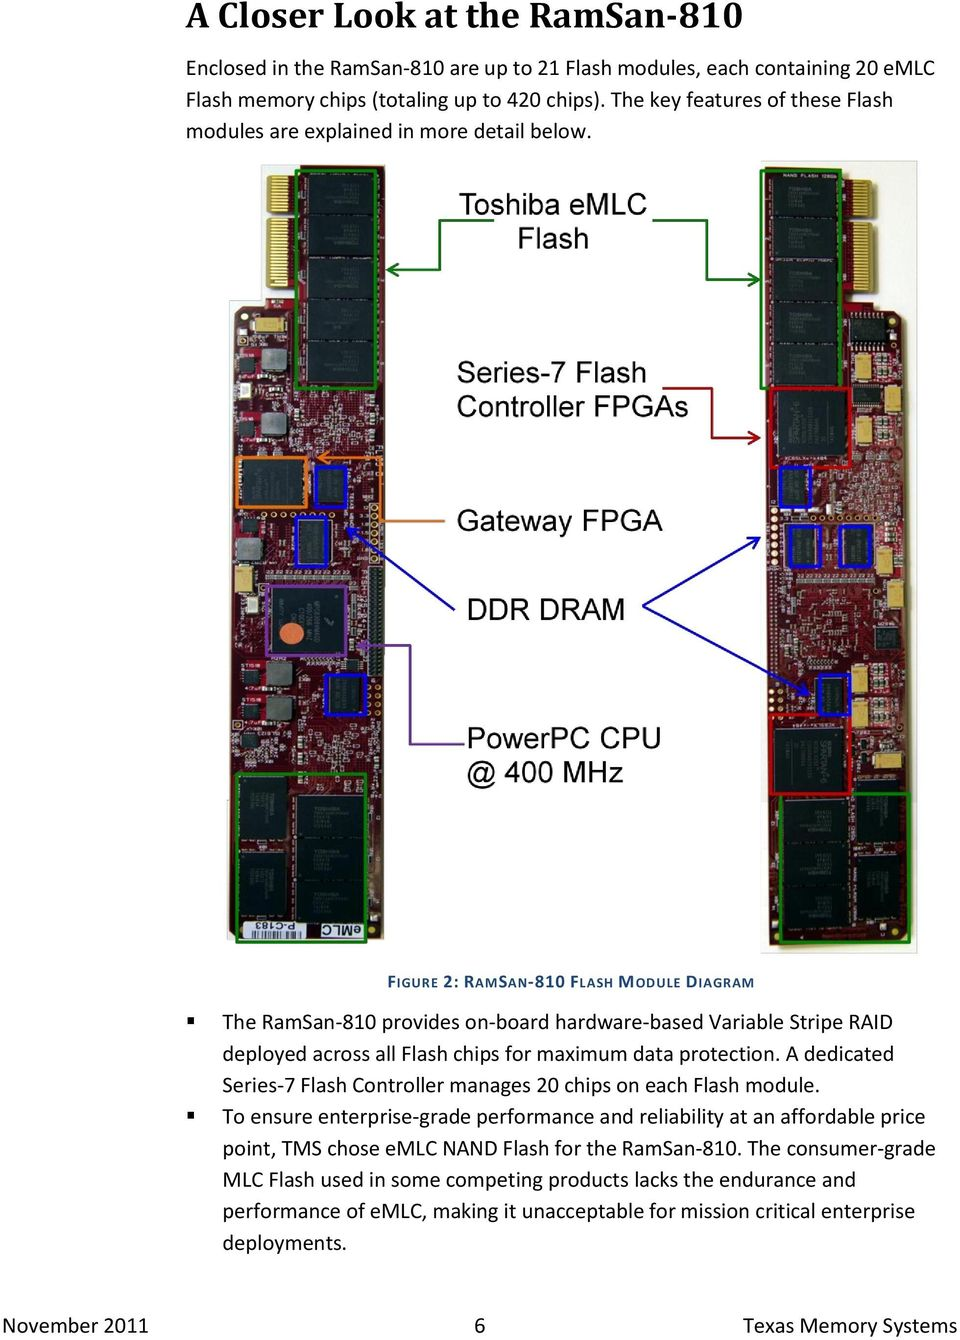 FIGURE 2: RAMSAN-810 FLASH MODULE DIAGRAM The RamSan-810 provides on-board hardware-based Variable Stripe RAID deployed across all Flash chips for maximum data protection.